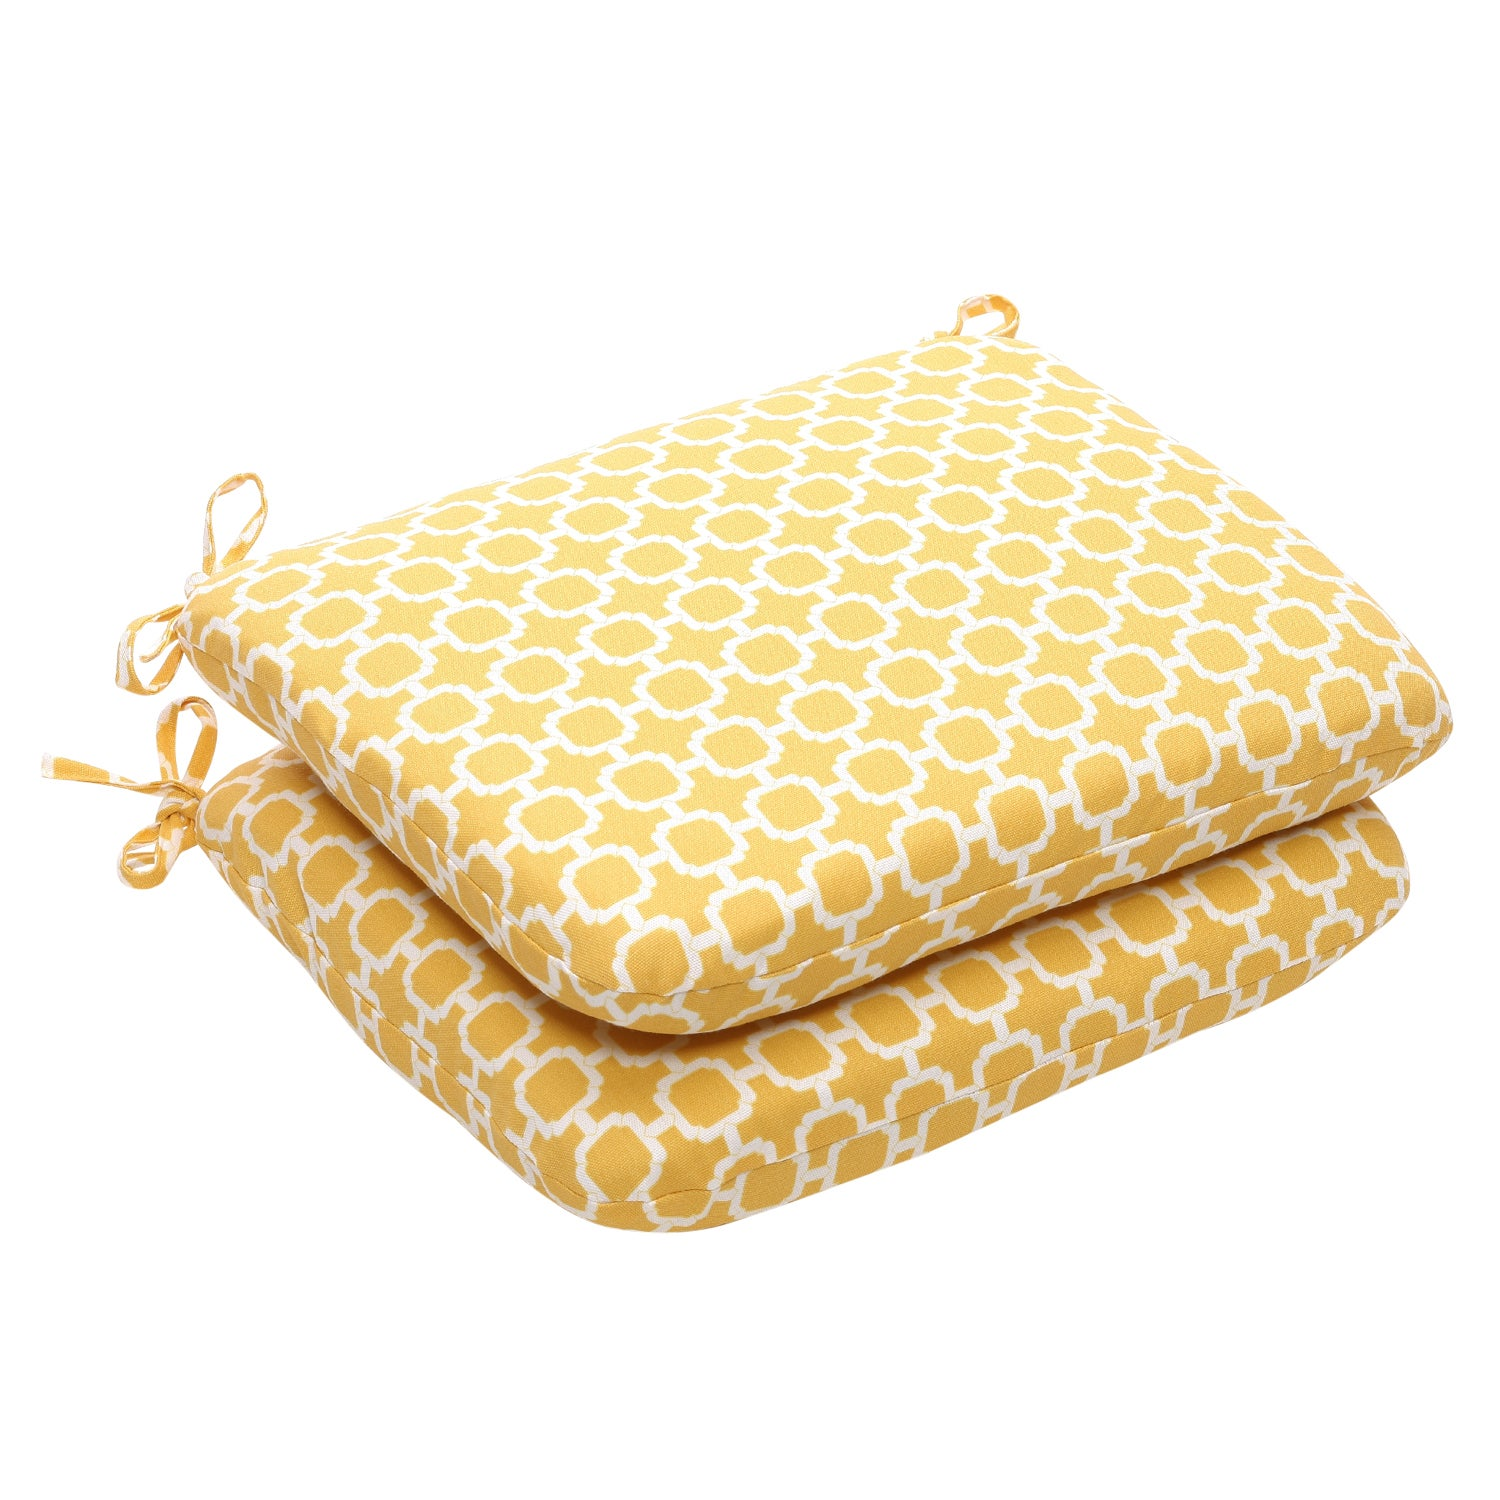 Outdoor Yellow and White Geometric Rounded Seat Cushion